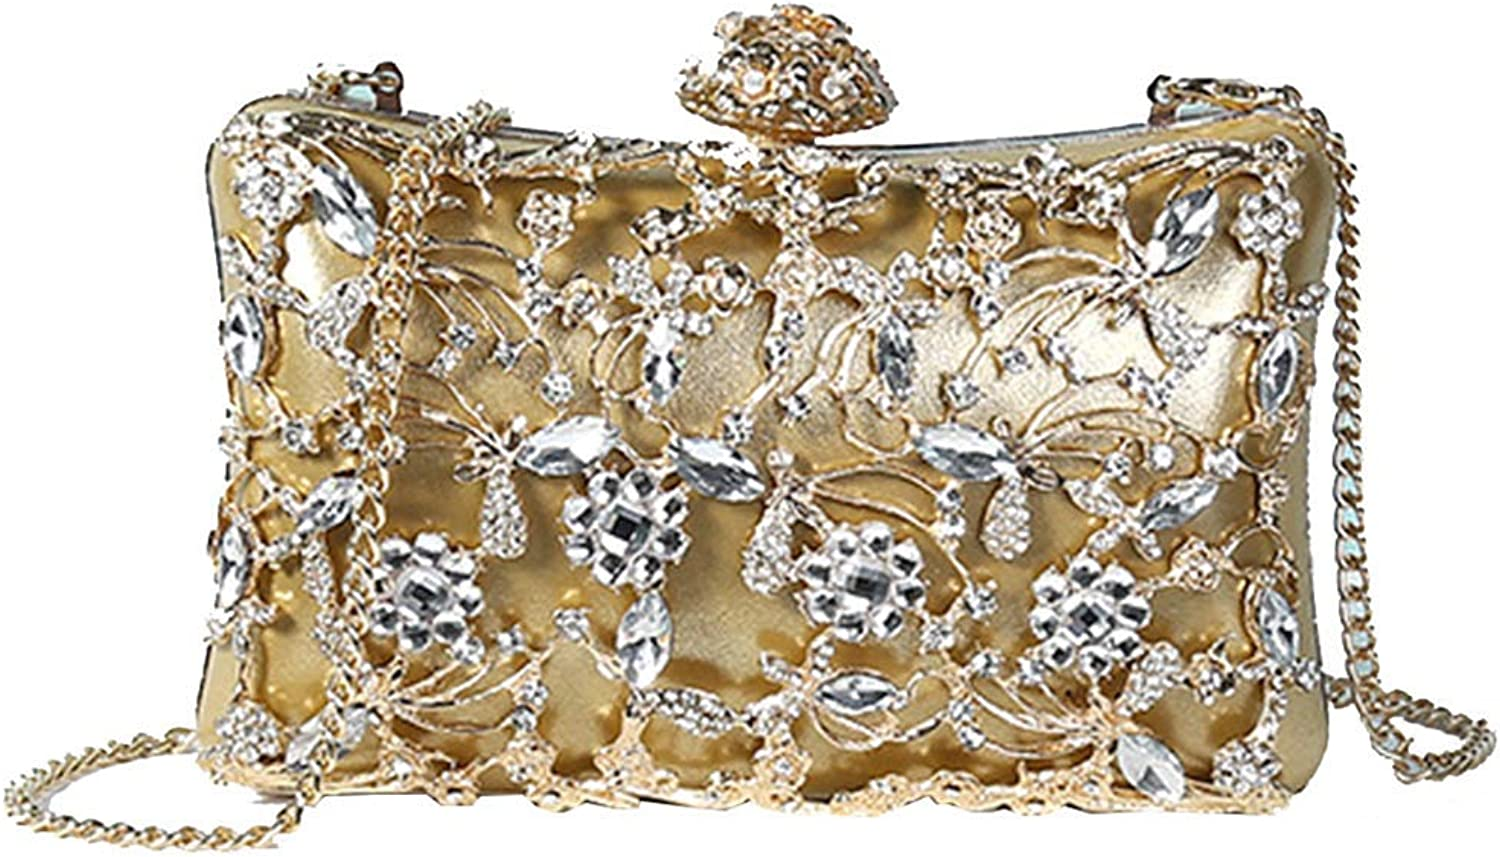 Soft Clutch  Noble Evening Bag for Ladies and Girls  Rhinestone Handbag with Lock  Ideal for A Party Or Wedding  Glittering,Multiple Colour,gold,22Cm4.5Cm11.5Cm Handbag